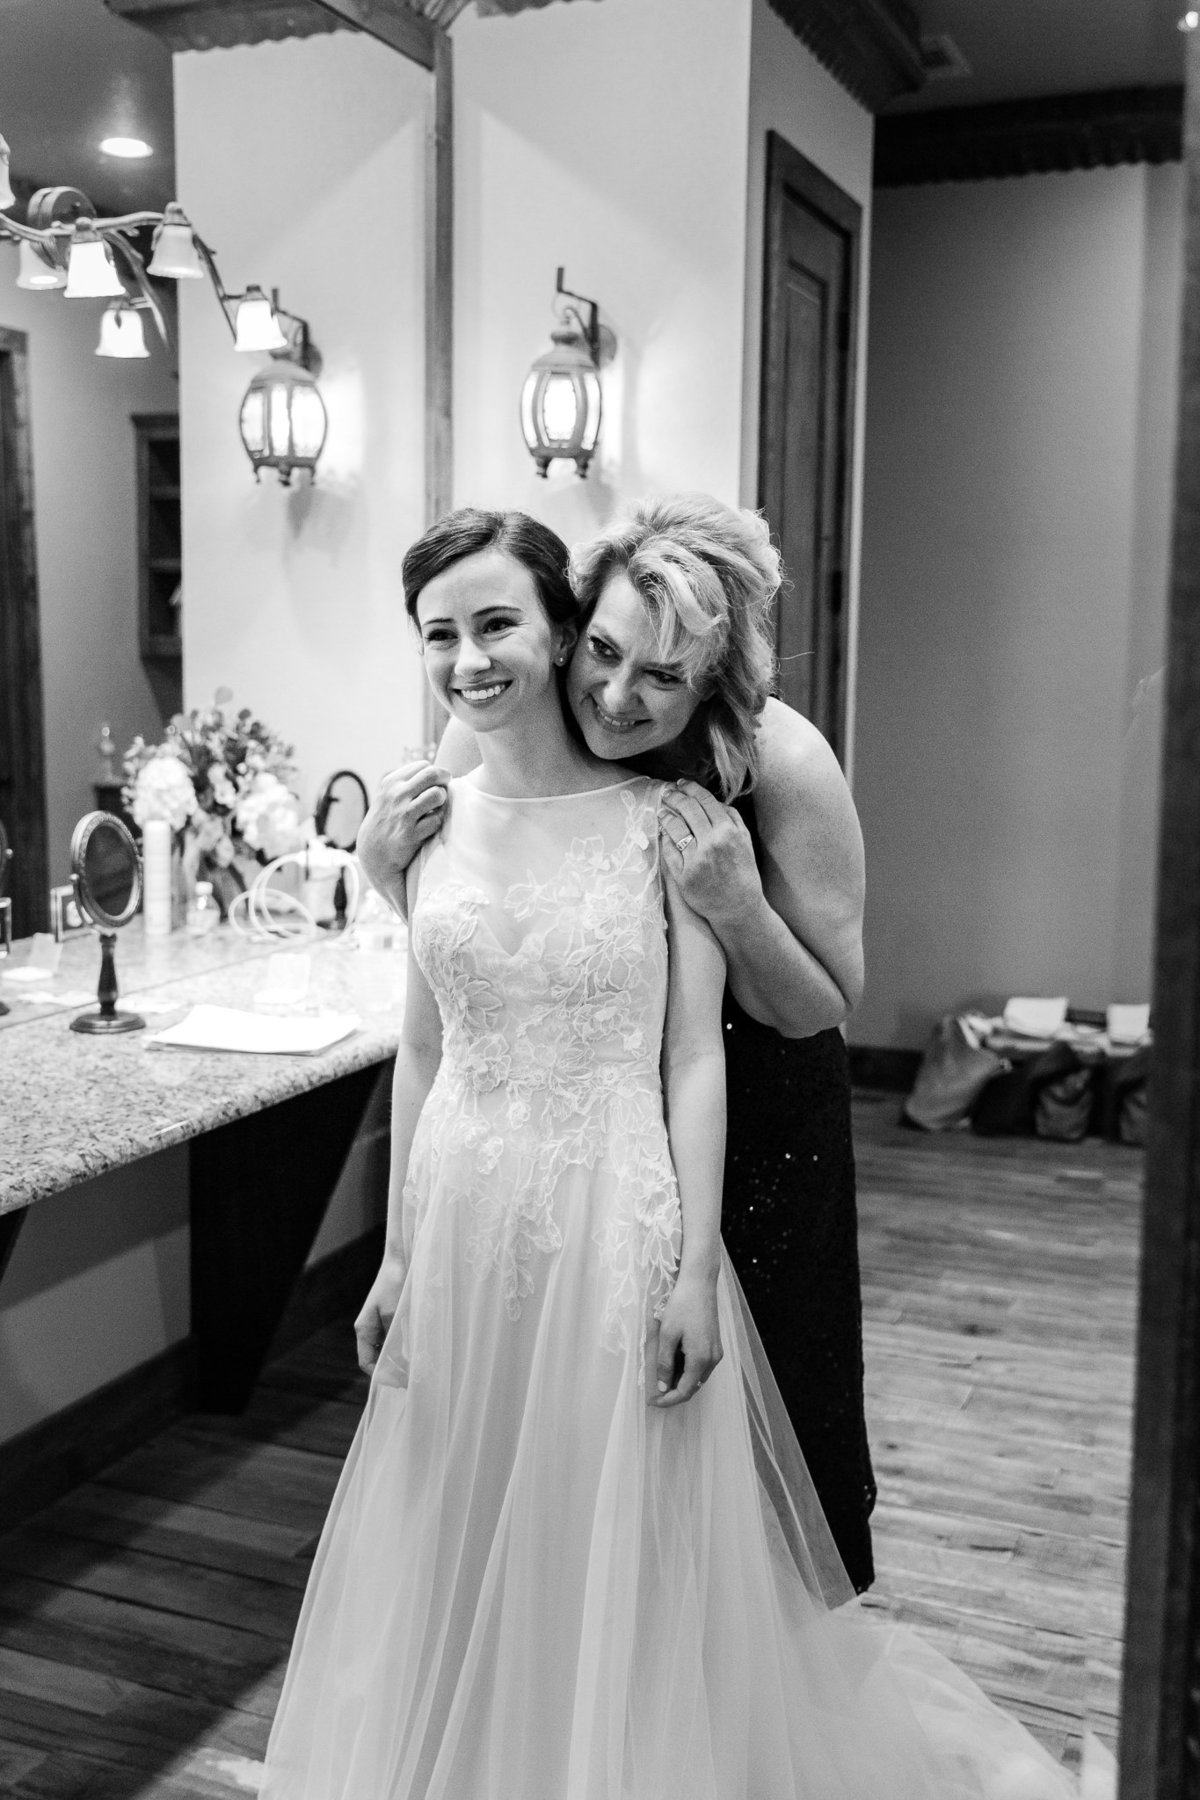 madeline_c_photography_dallas_wedding_photographer_megan_connor-20